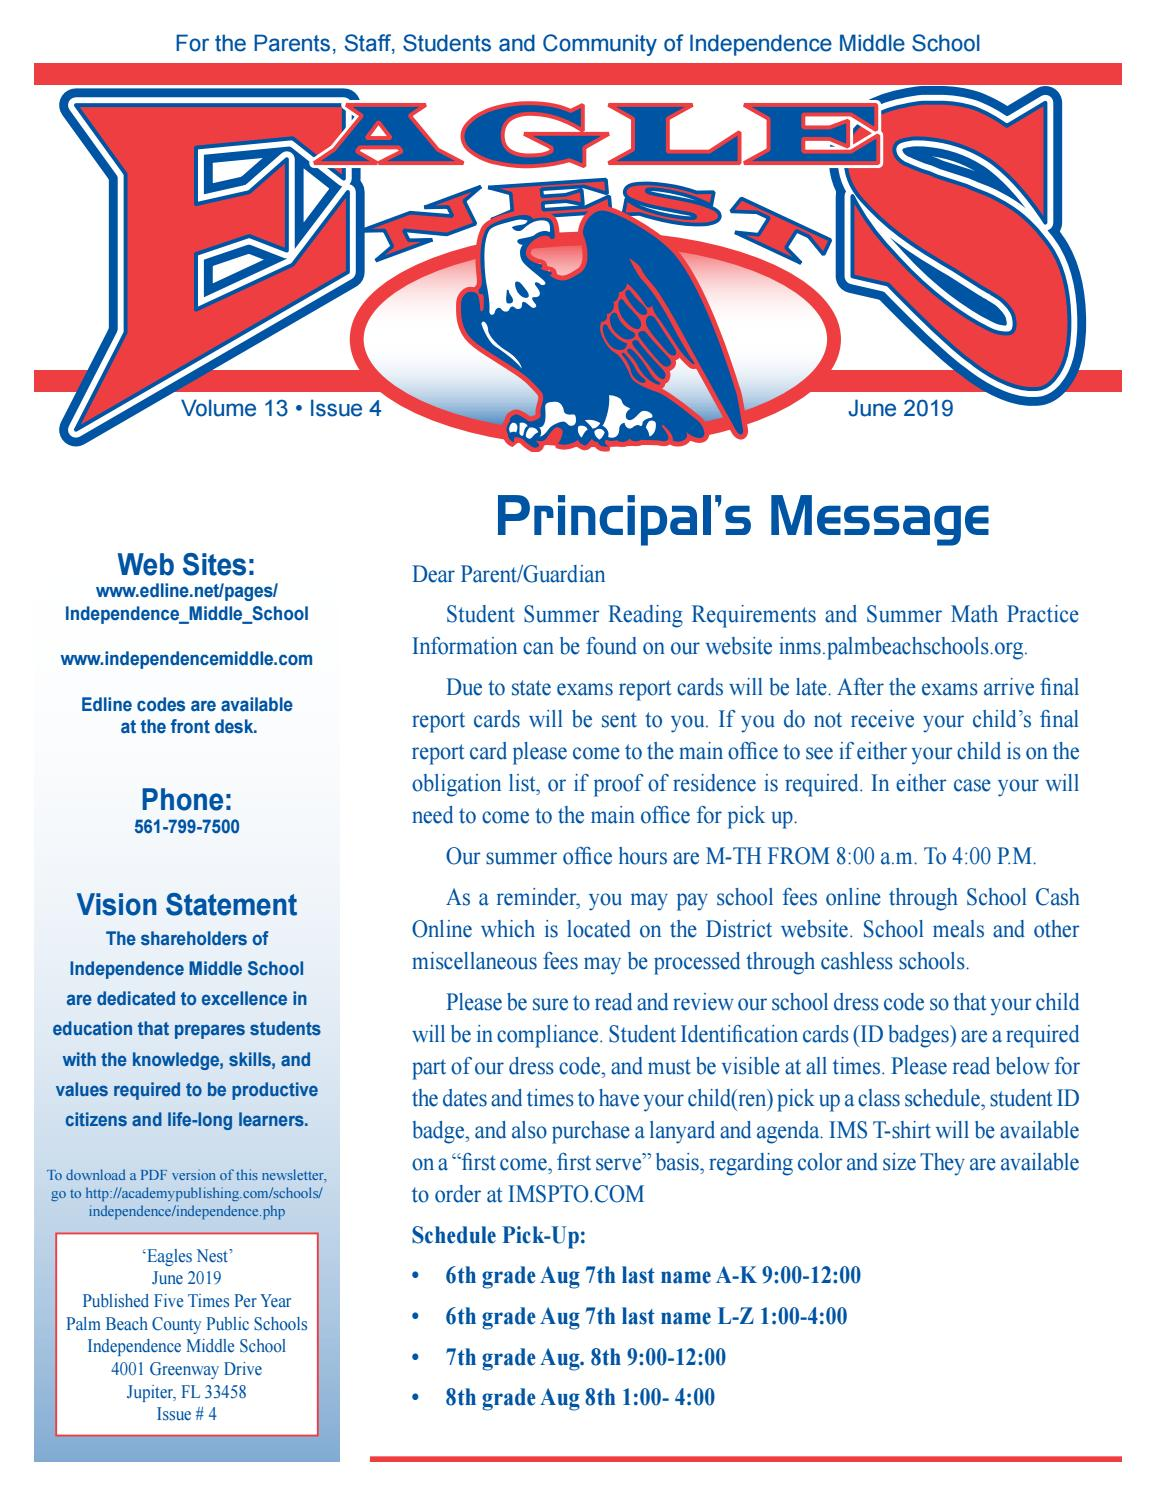 Independence Middle School Newsletter by Academy Publishing